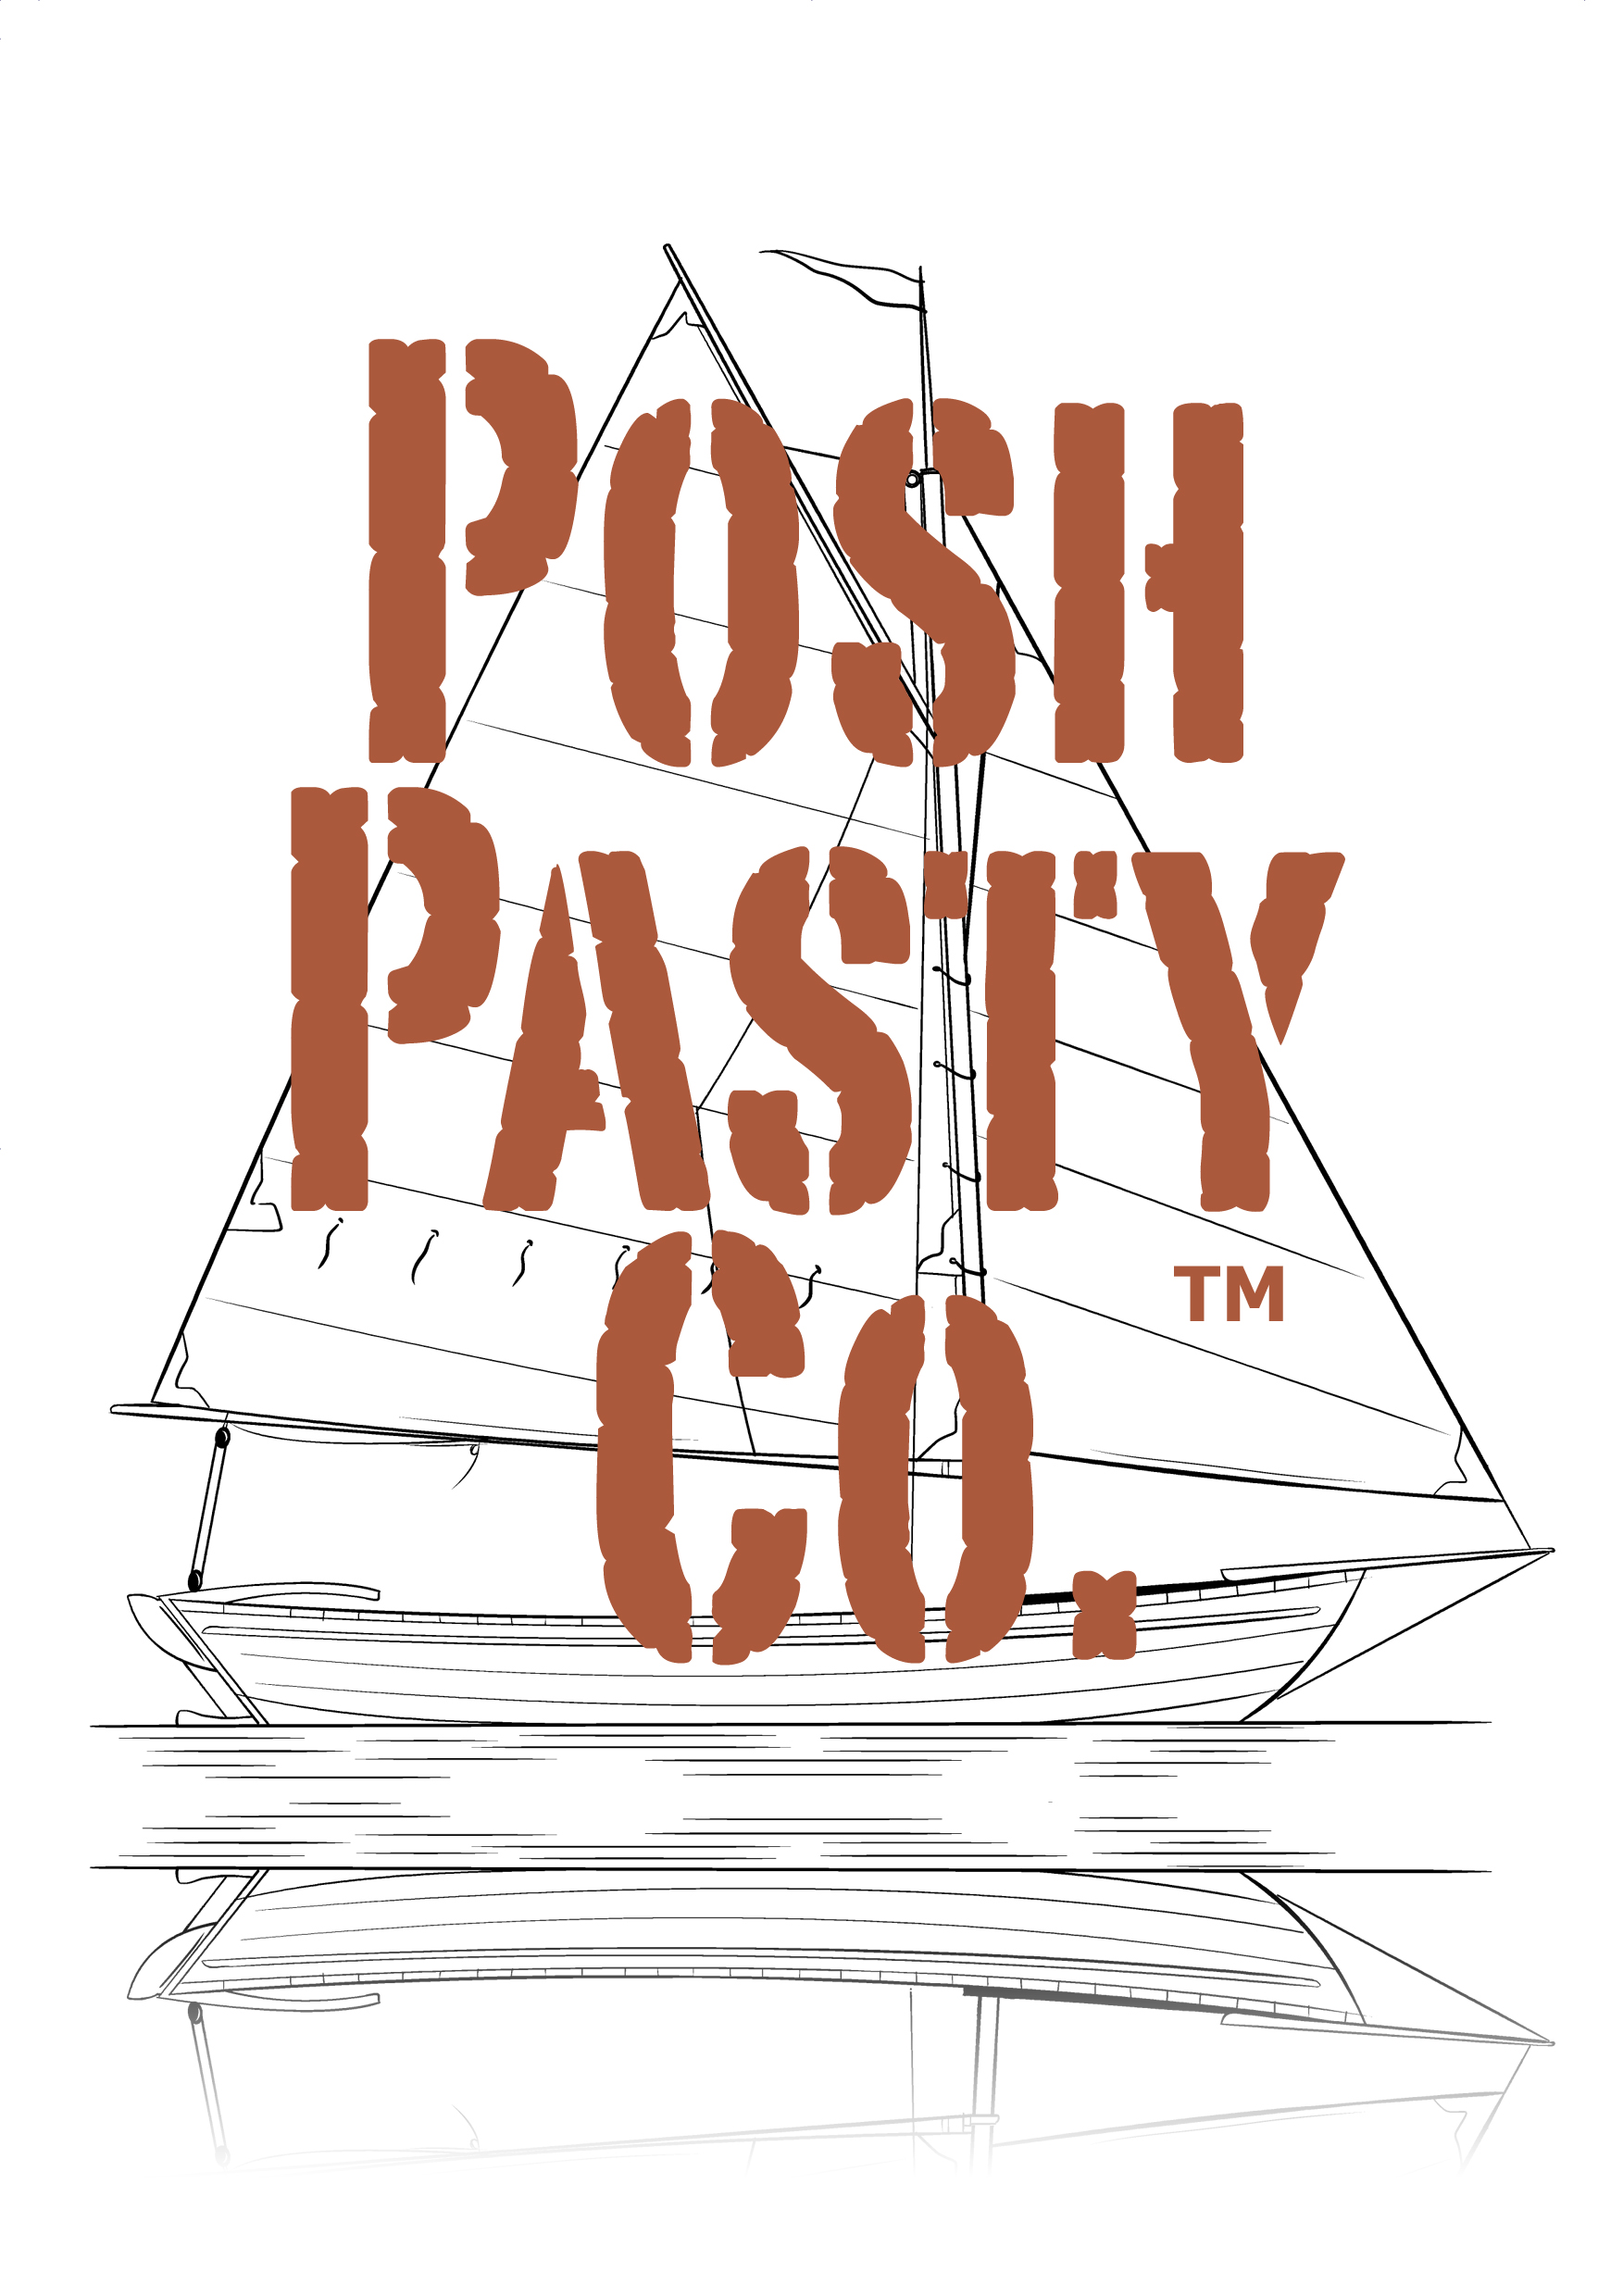 Posh Pasty Co logo